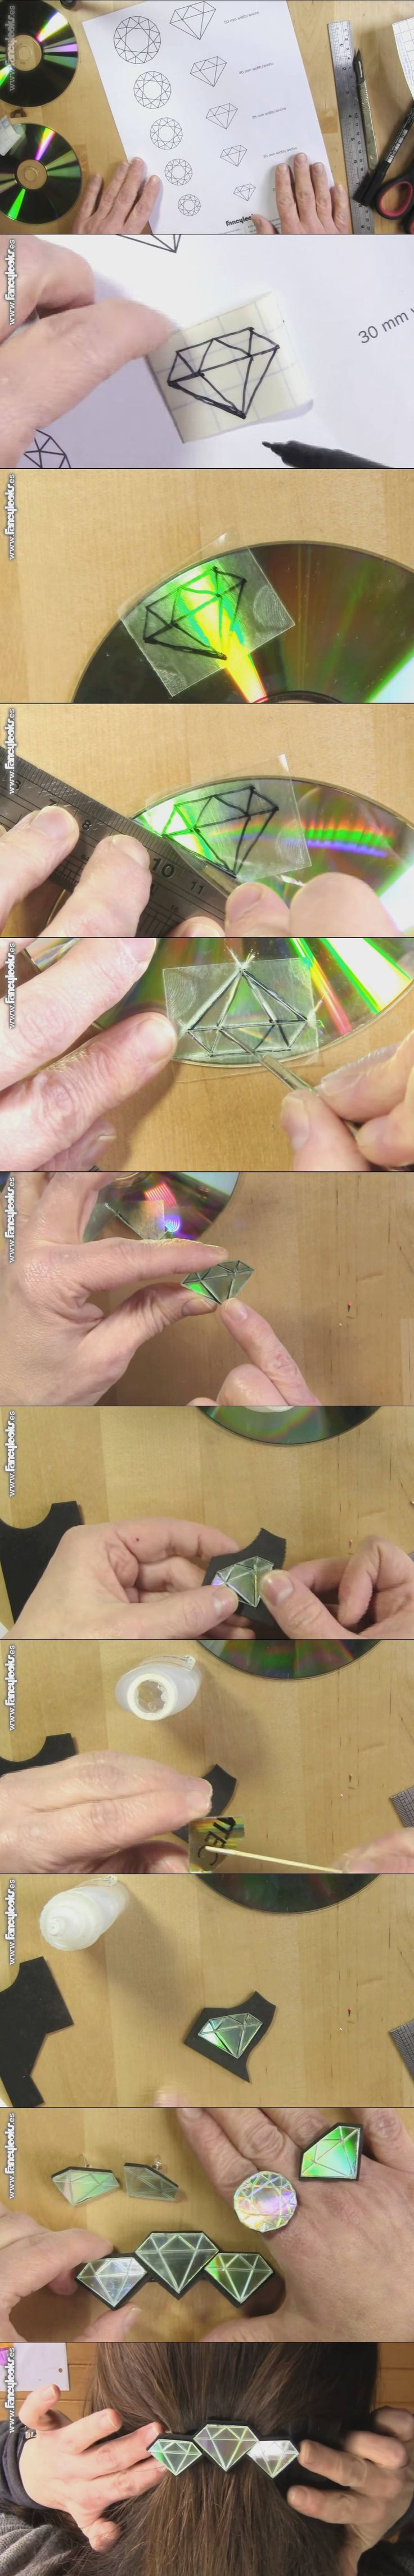 DIY: using CD's to make hair accessories; rings & so many other decorative uses.